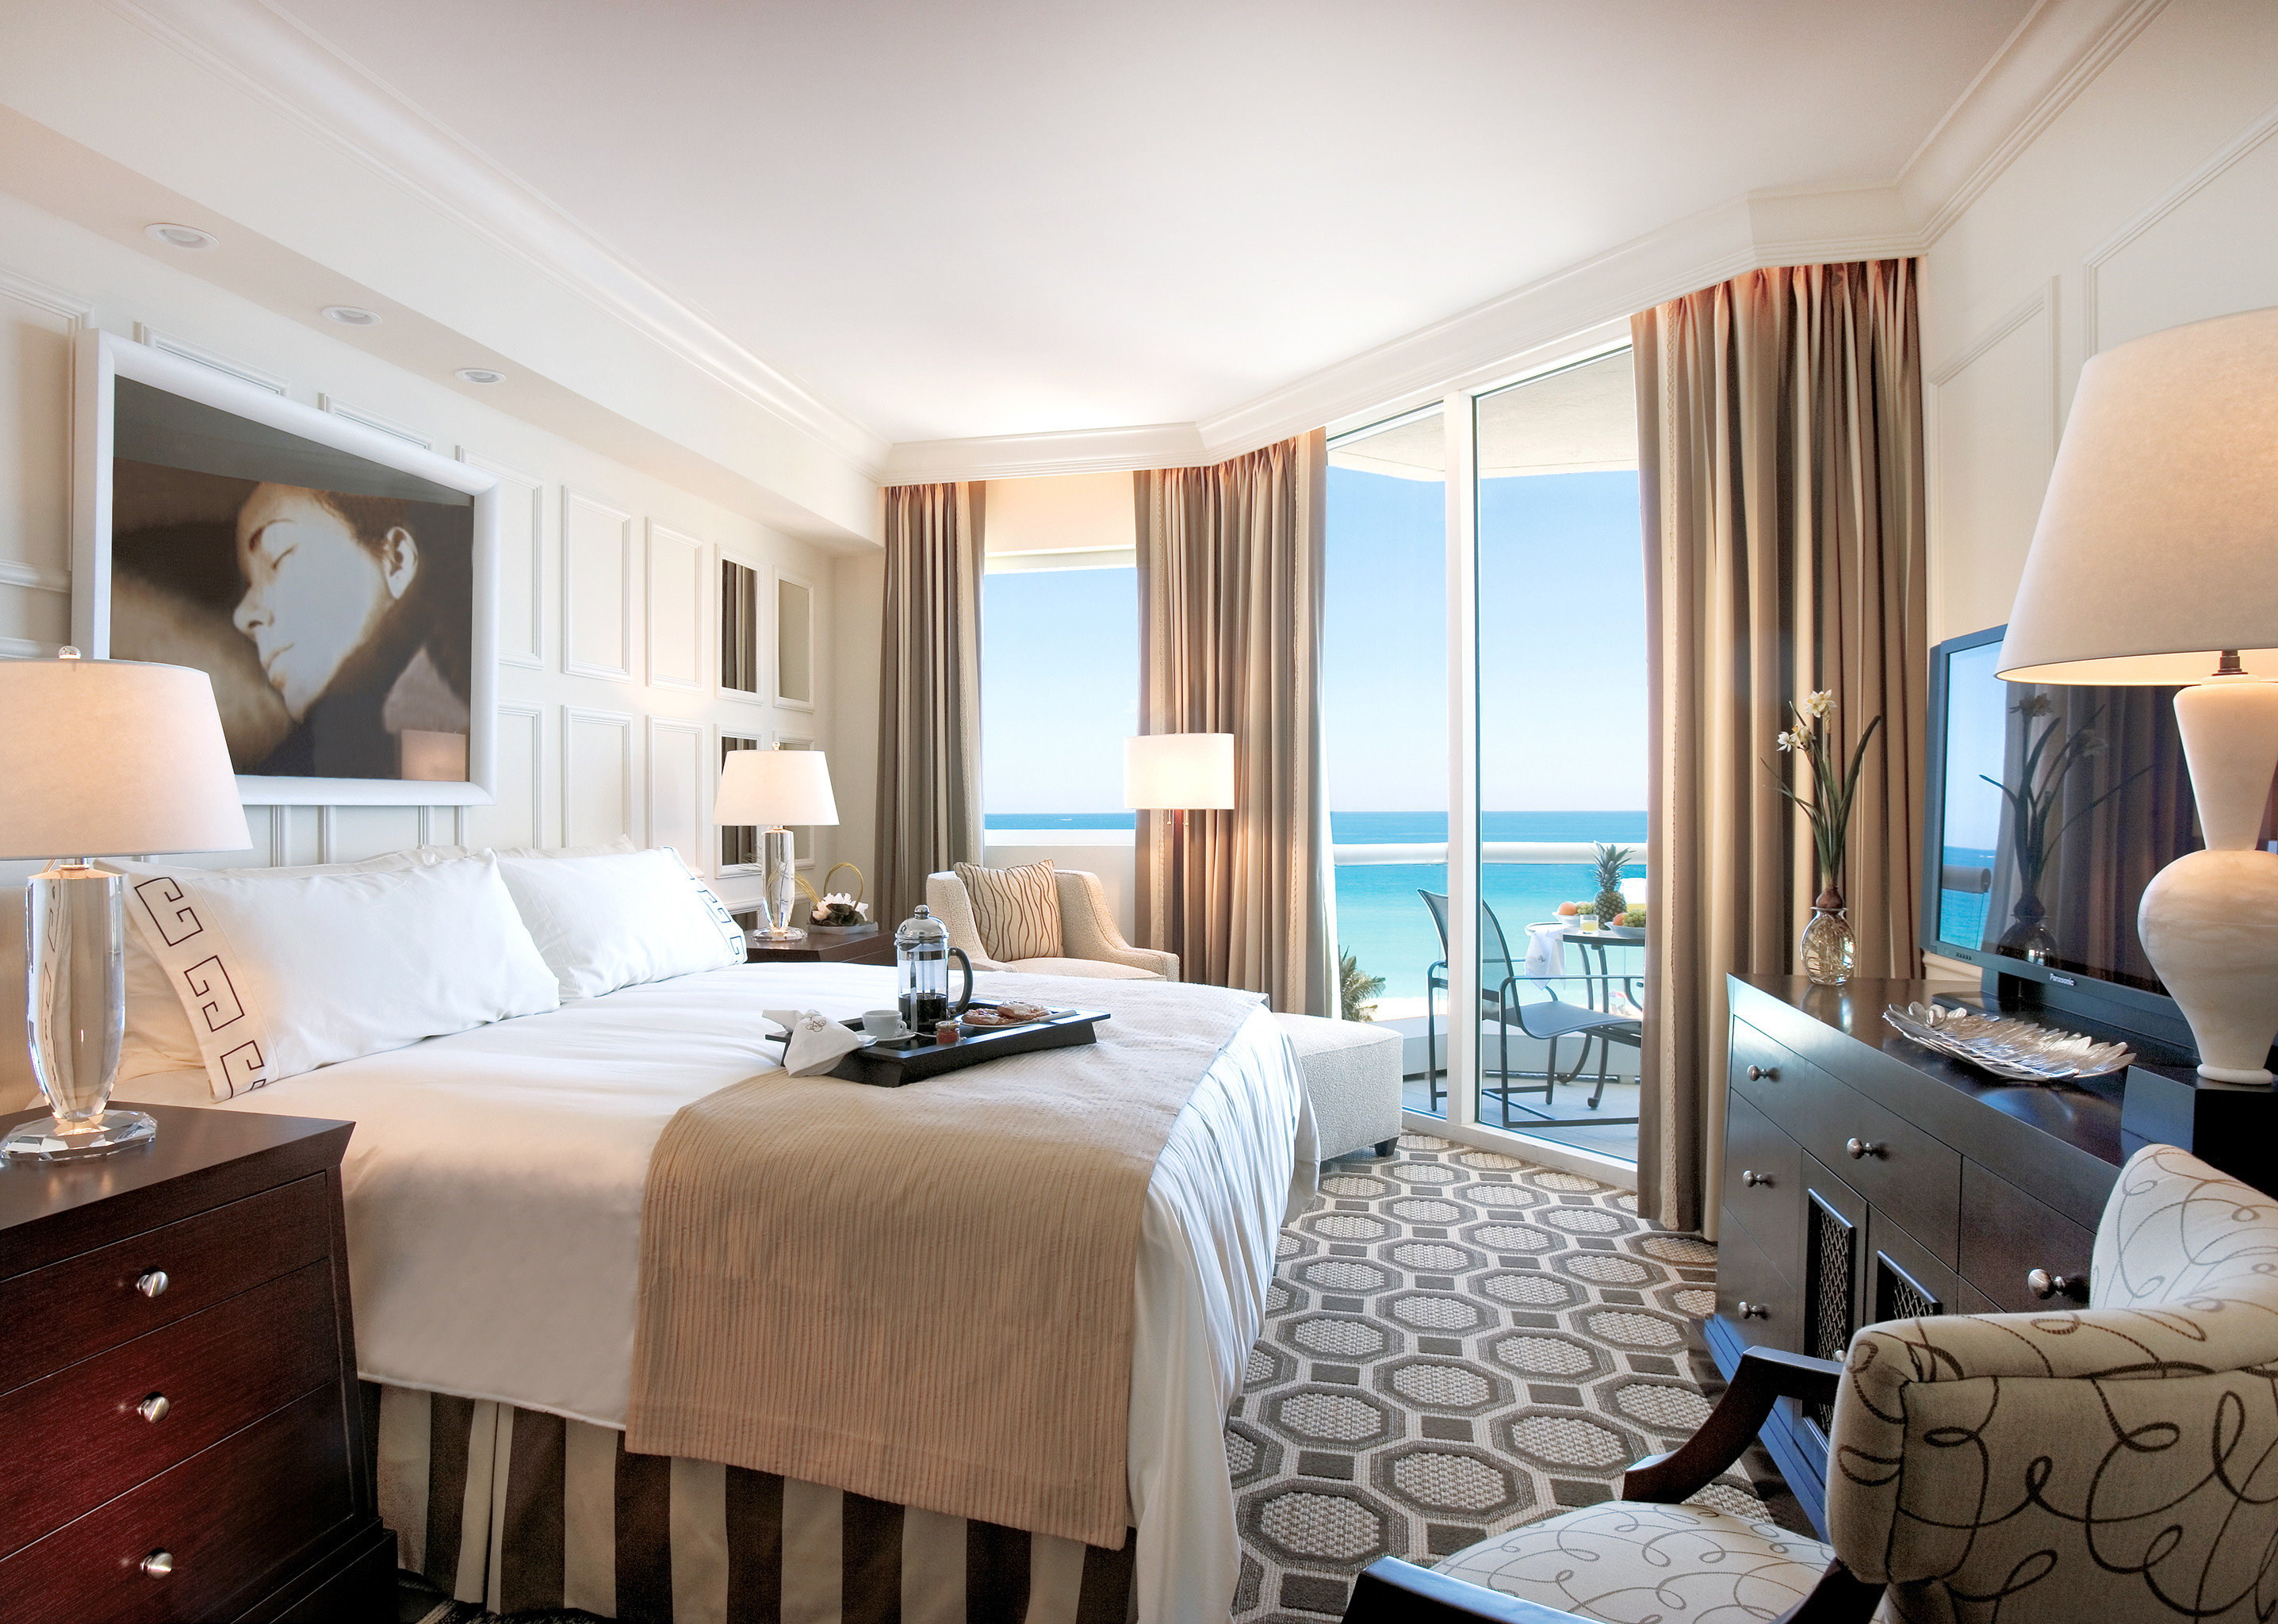 10 best luxury hotels in miami - 2 bedroom hotel suites in miami south beach ...